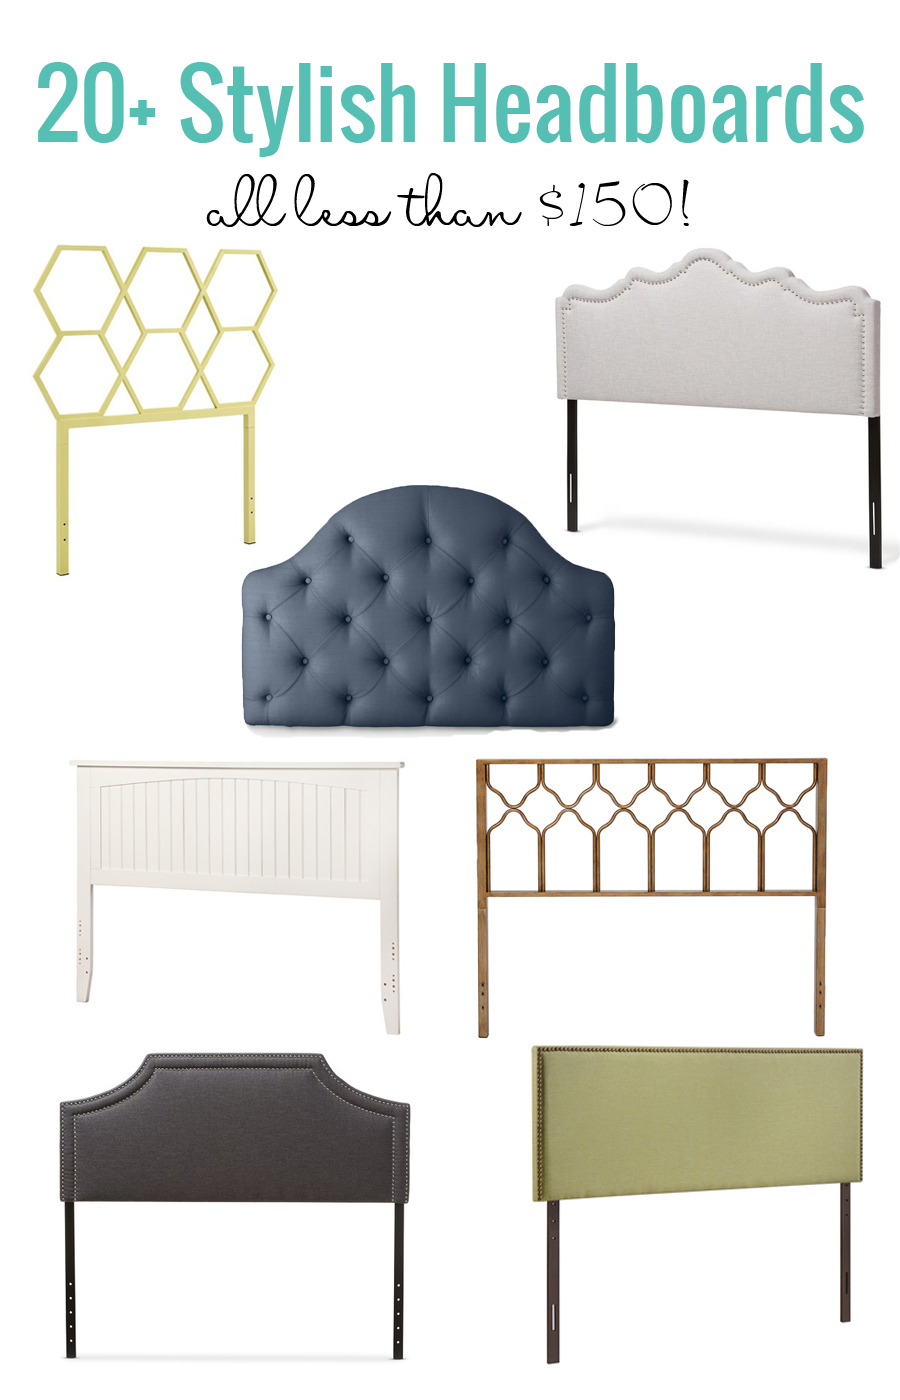 remodelaholic | 20+ stylish headboards under $150